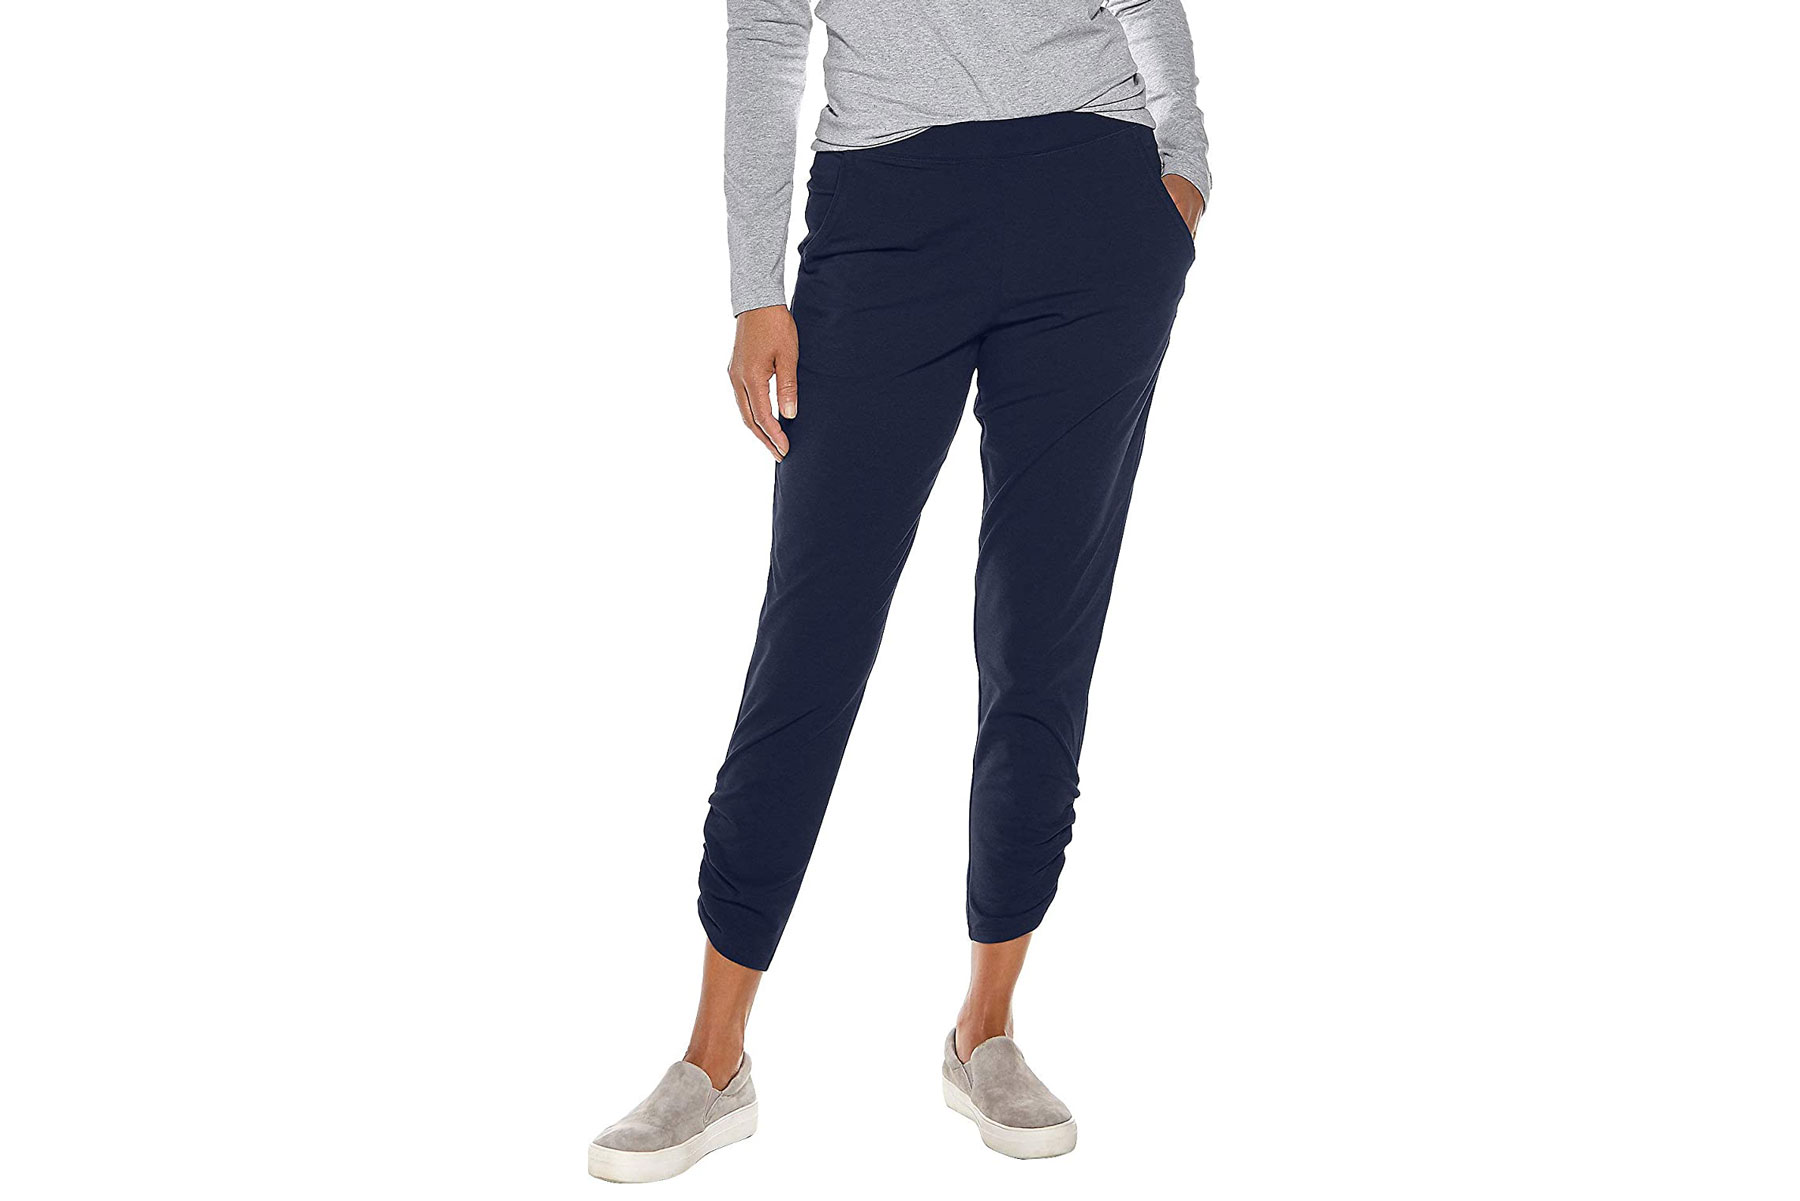 Women's navy cropped pants